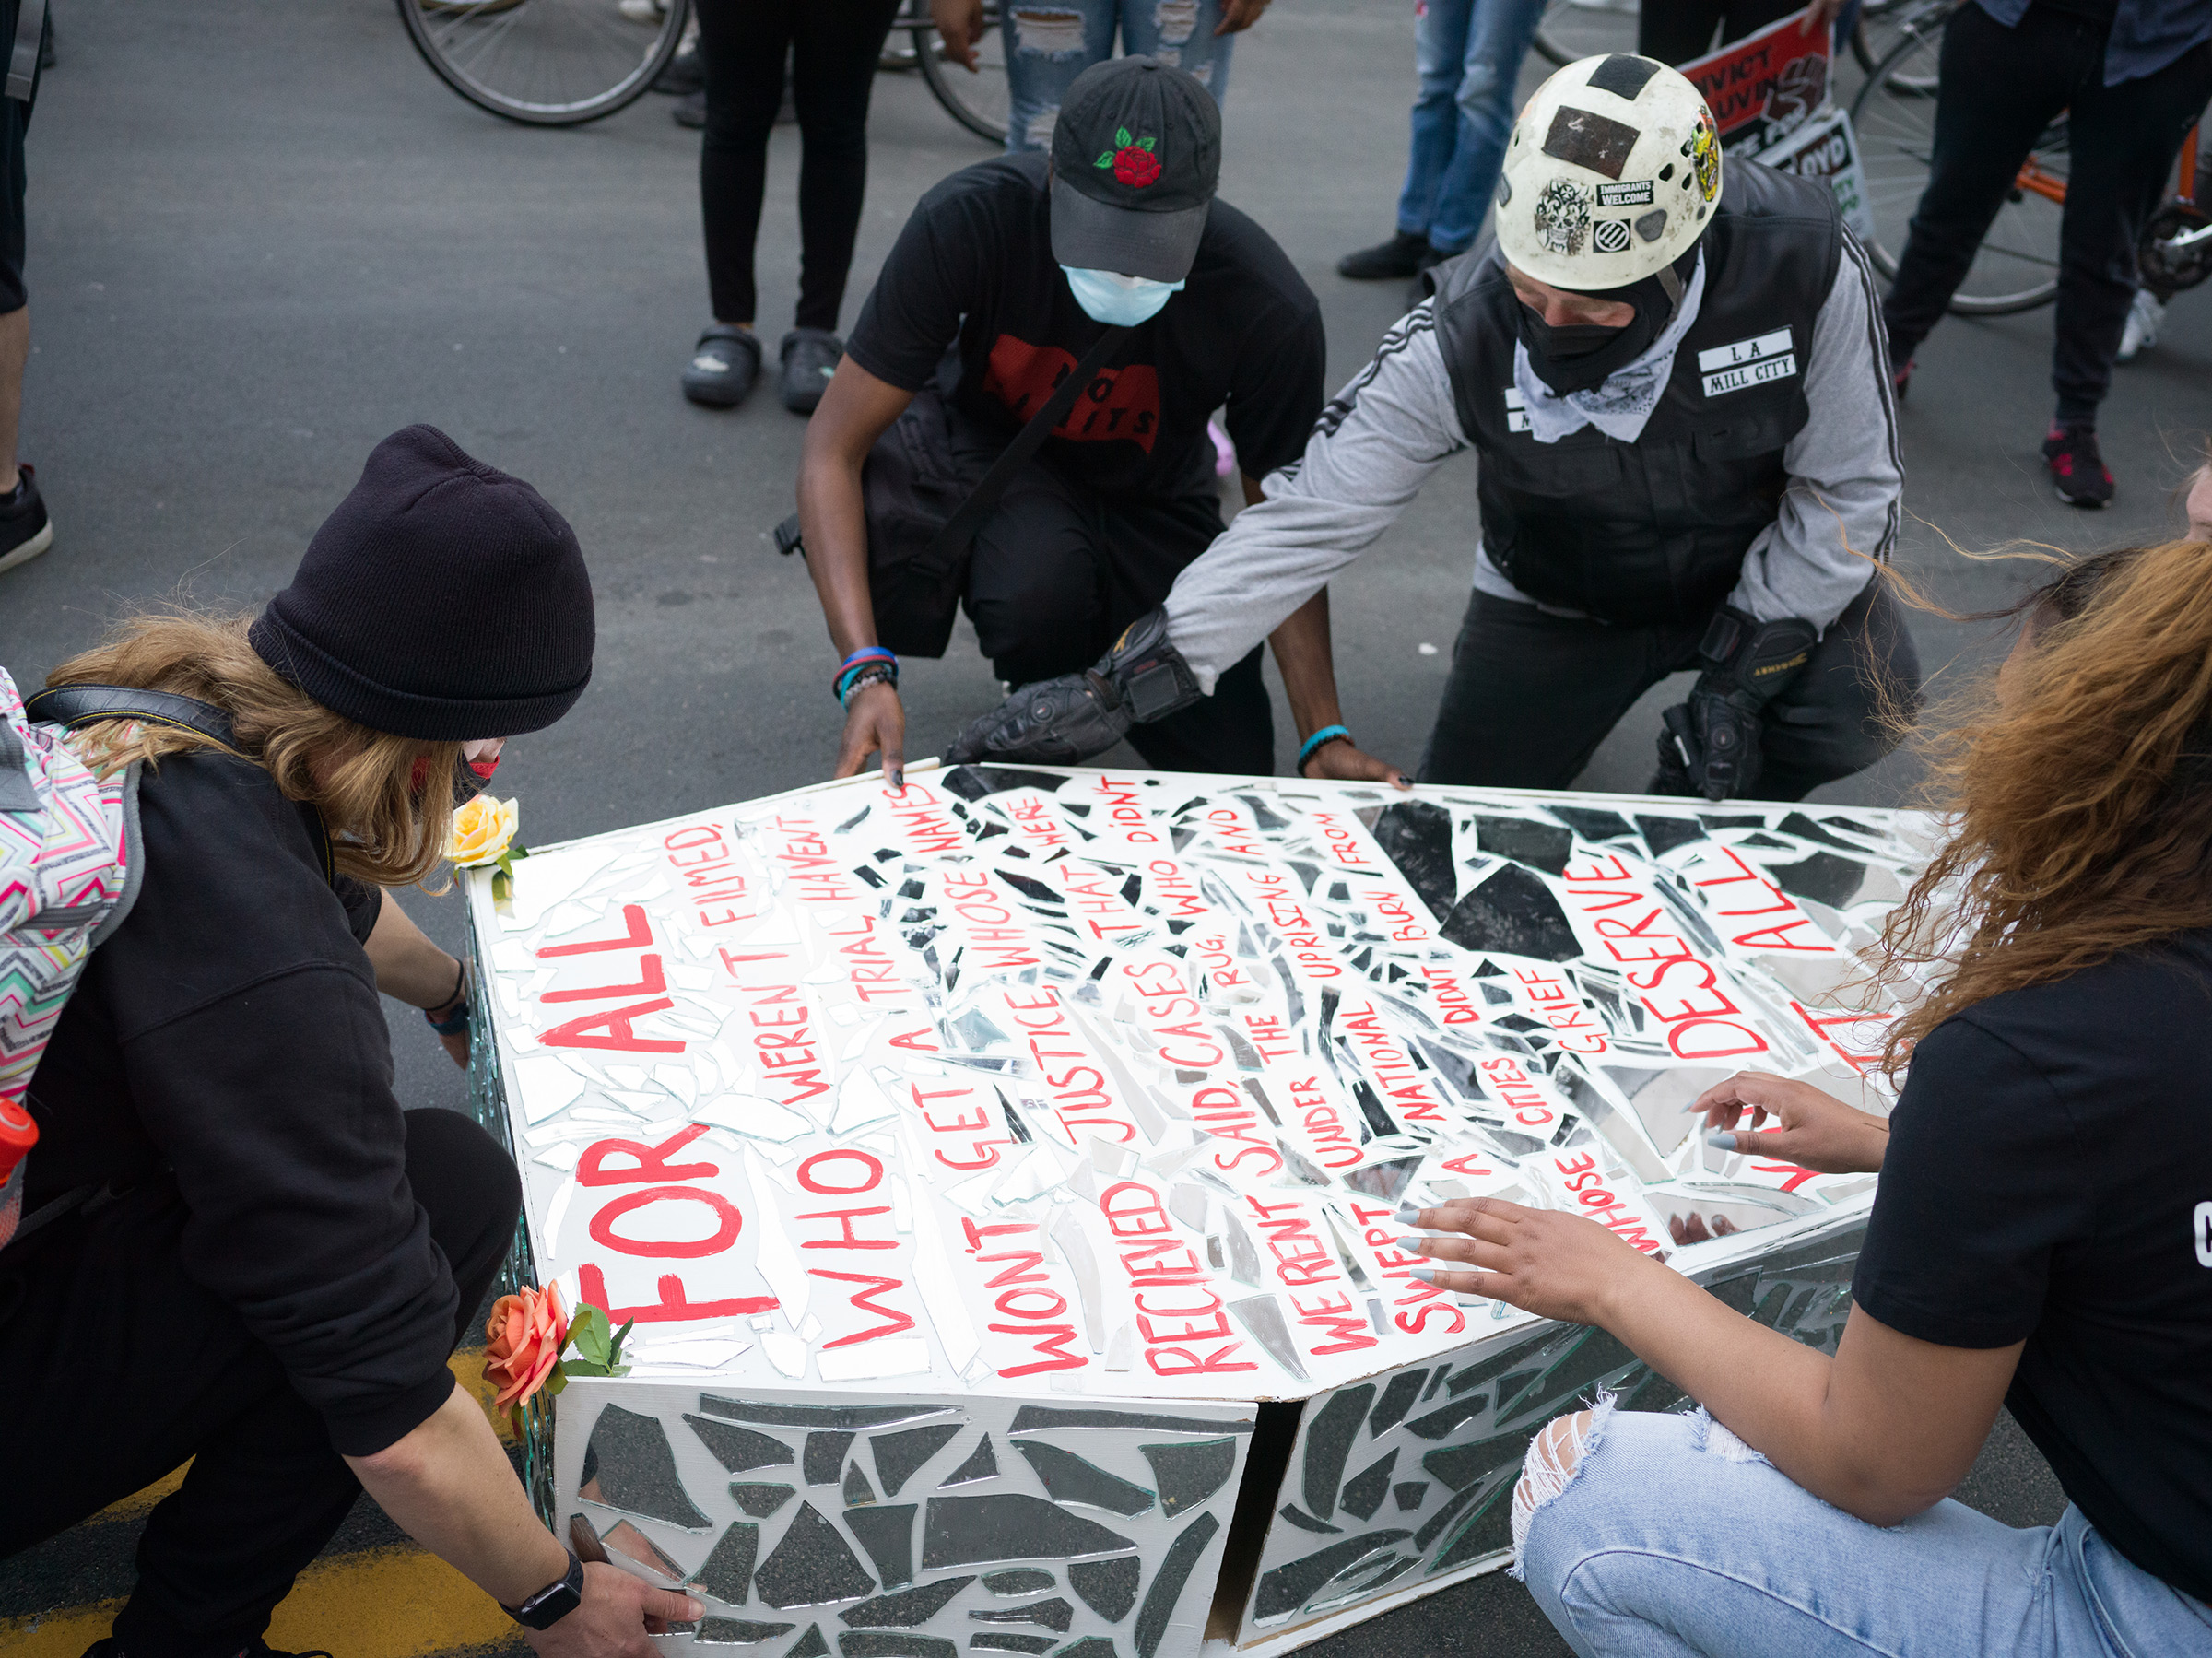 Protesters lift a a makeshift coffin, paying homage to all the slain victims of police killing who were not filmed, outside the Derek Chauvin trial in Minneapolis on March 29.